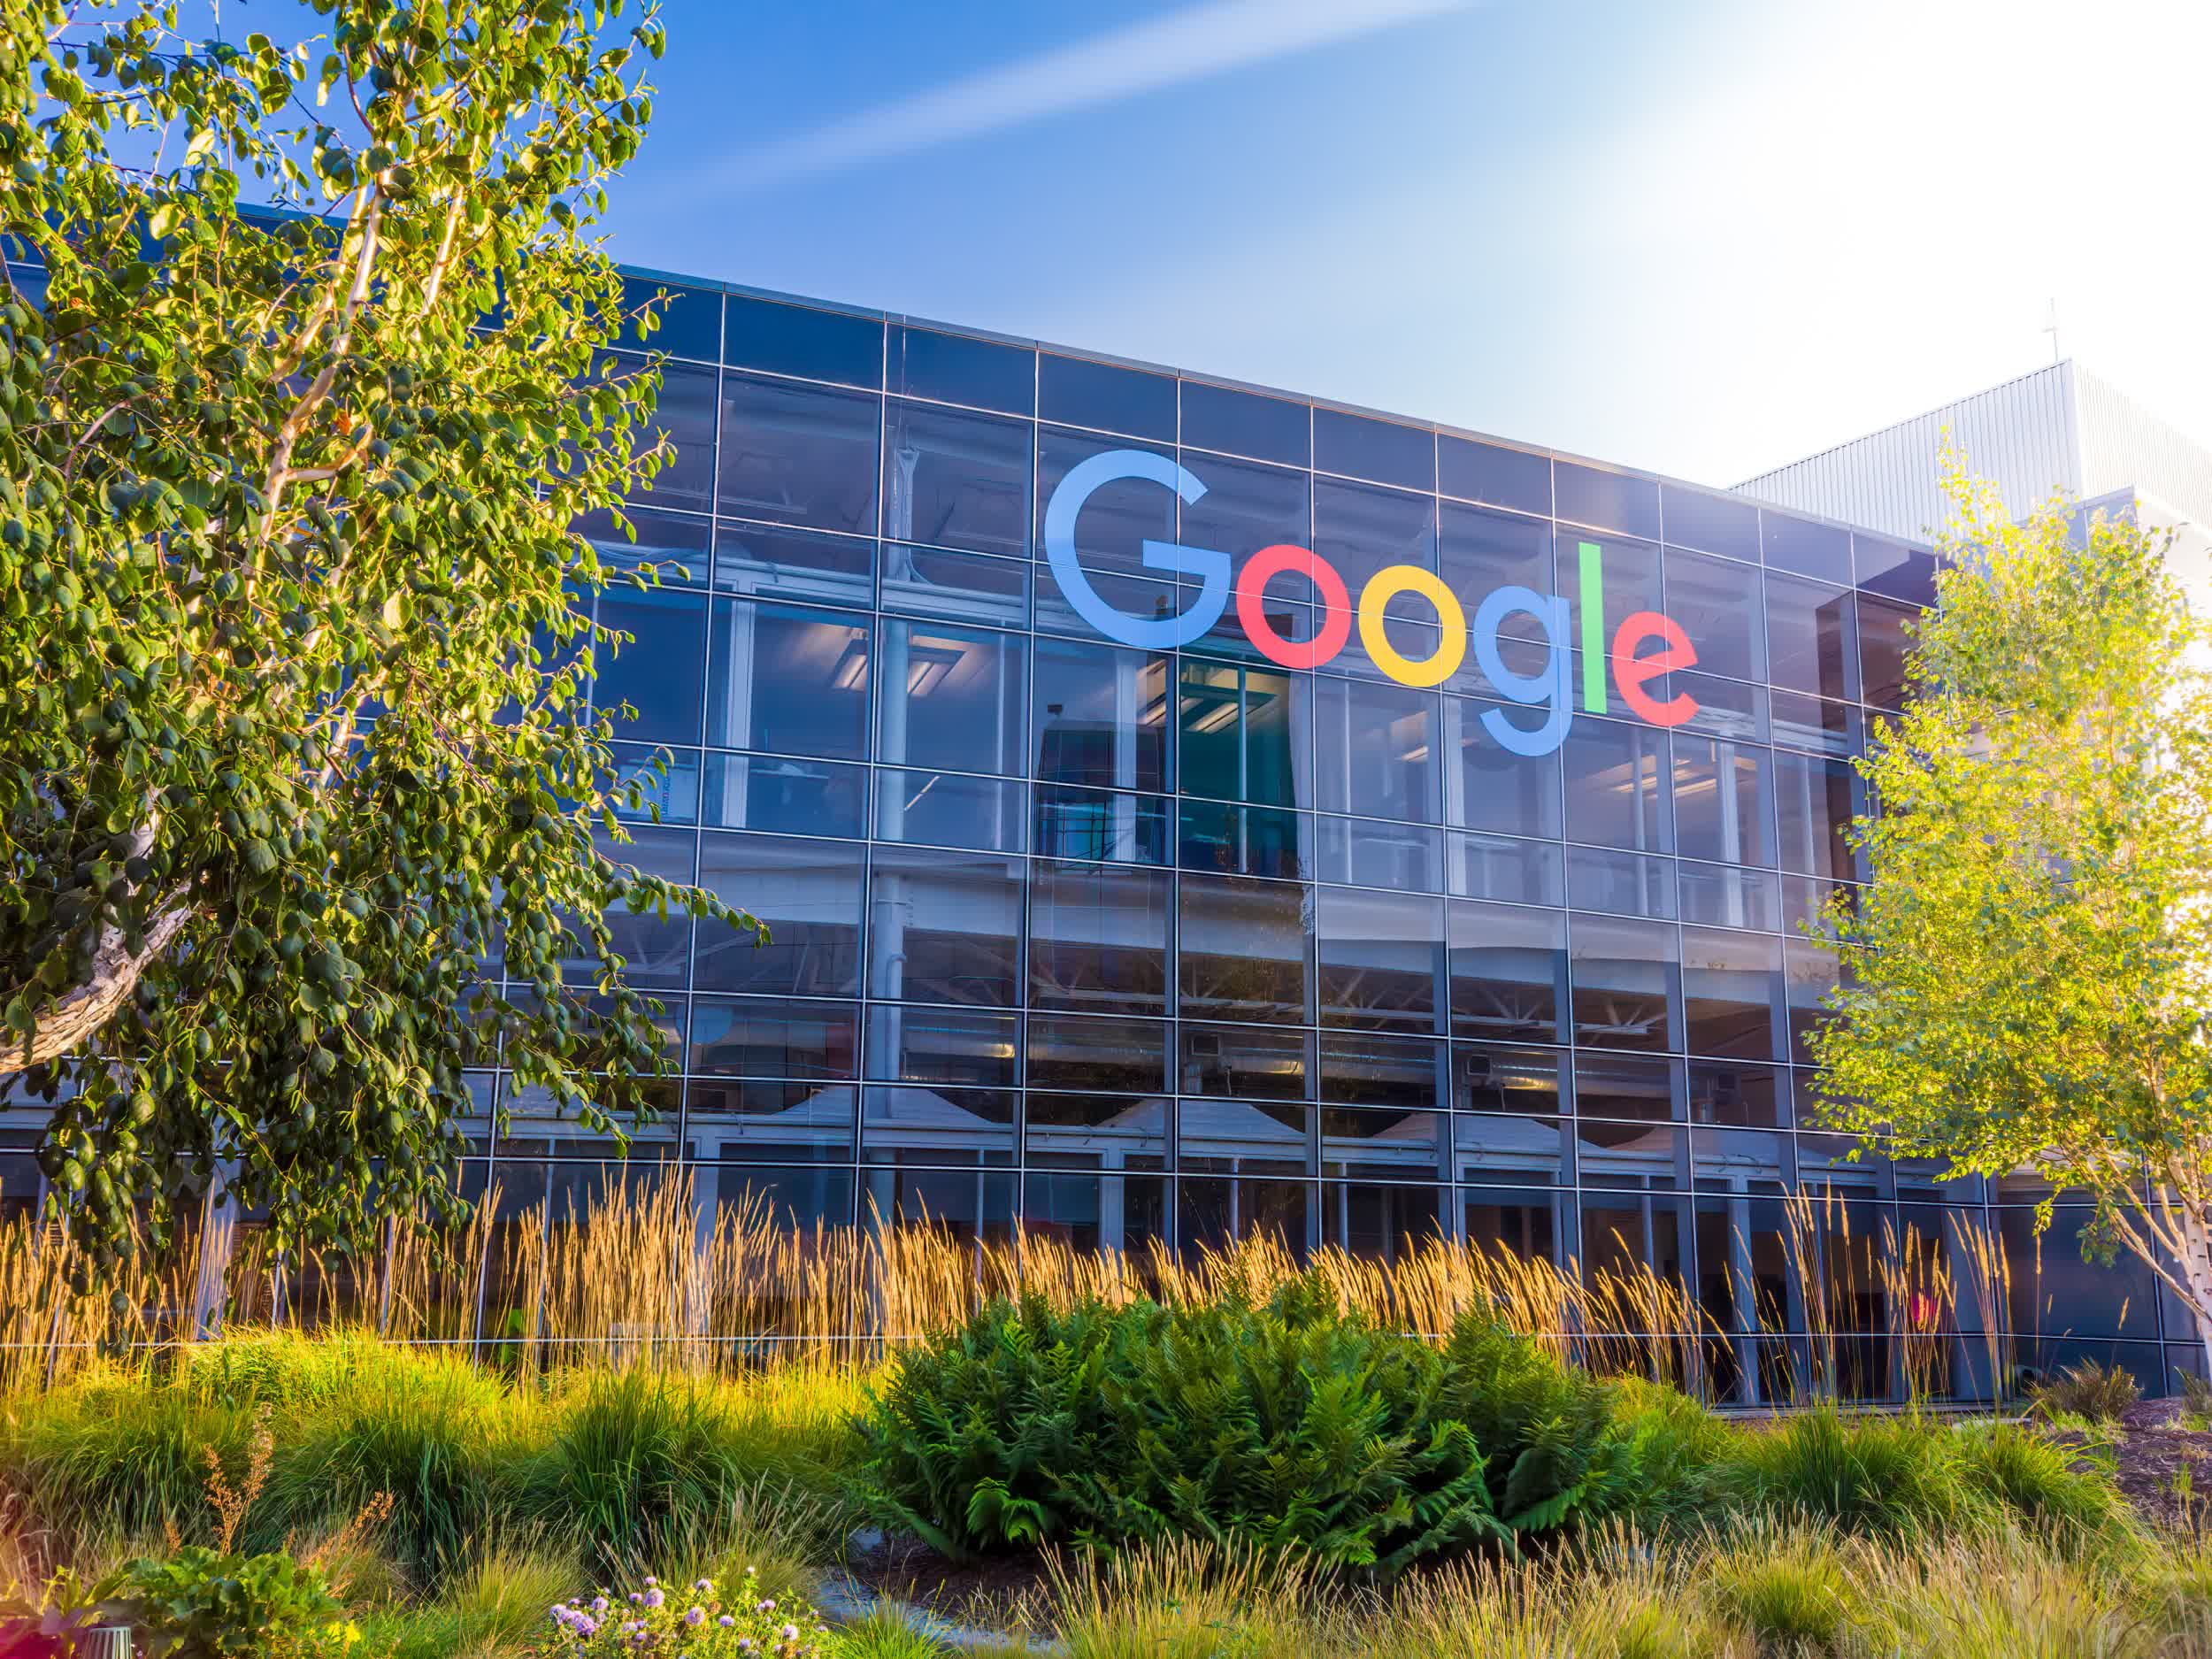 Google is converting some of its locations into vaccination clinics